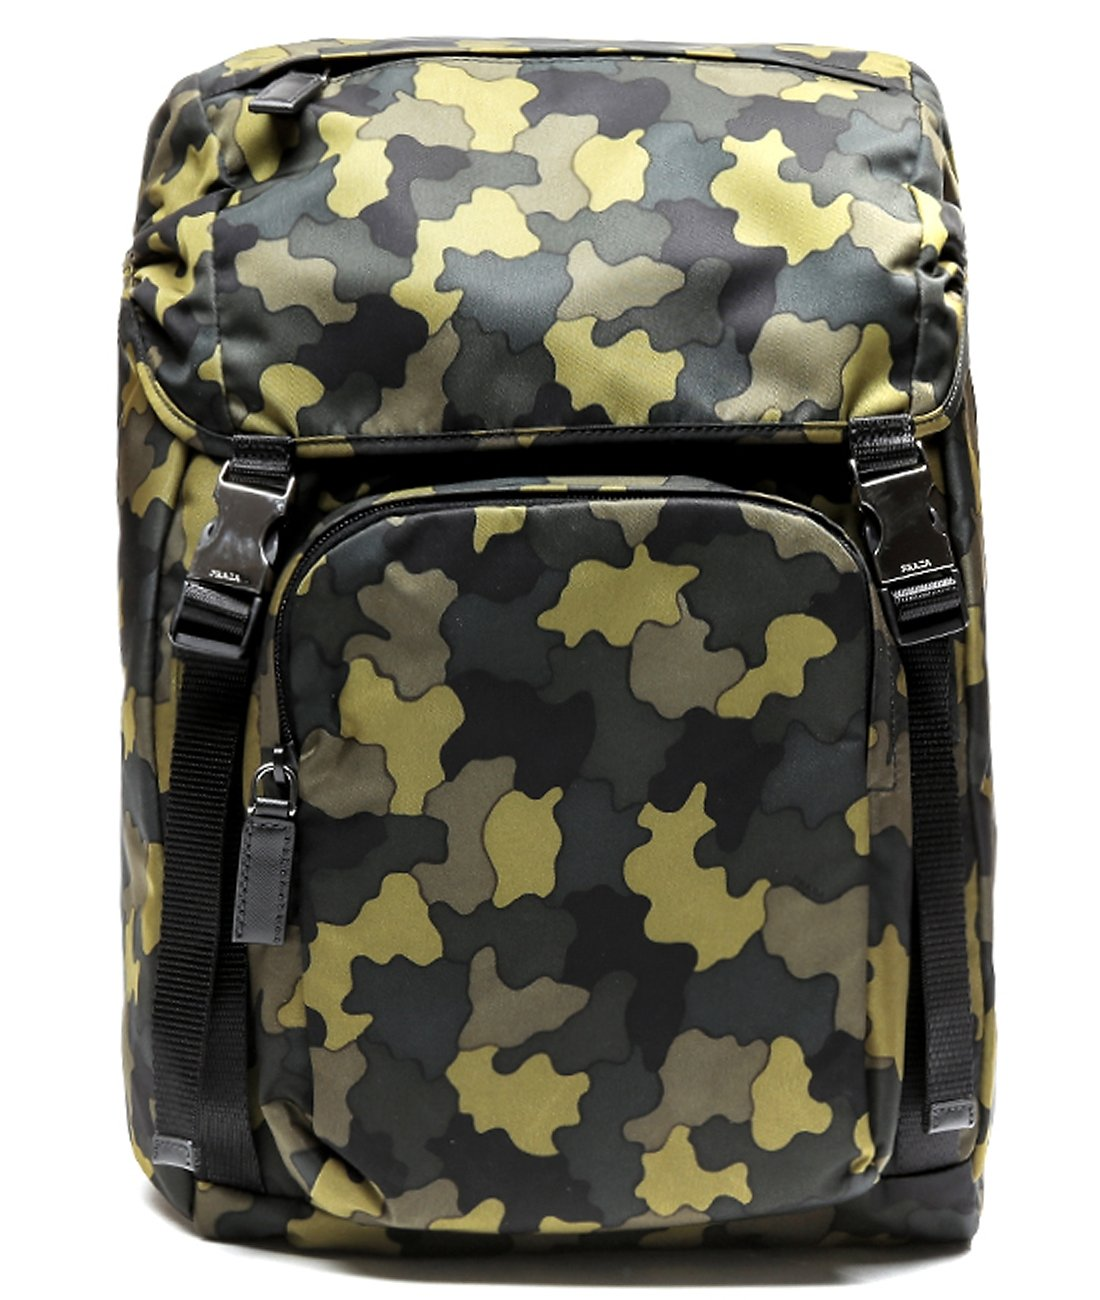 Prada Men's Top Flap Travel Backpack One Size Camouflage